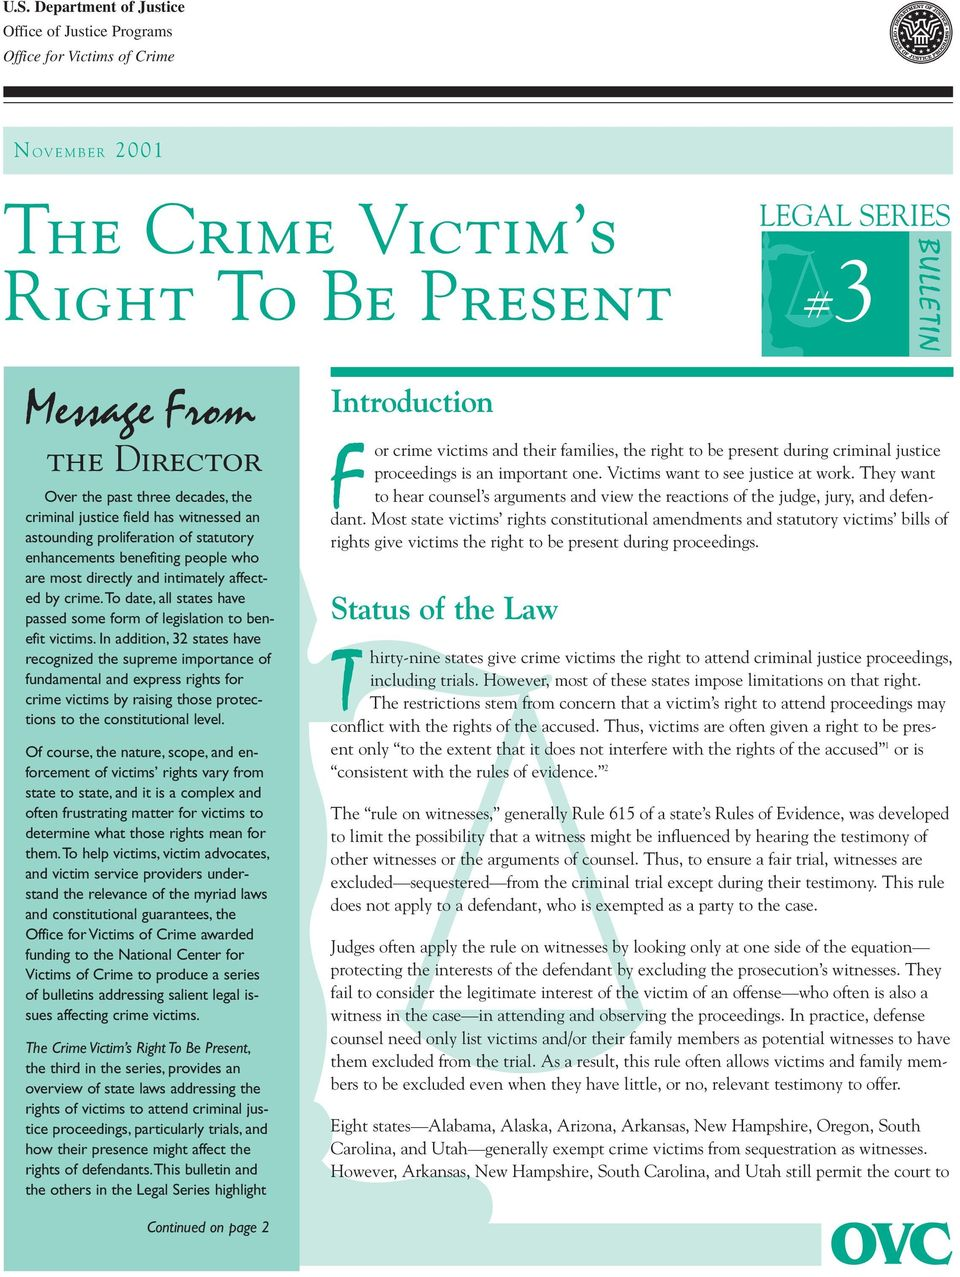 to date, all states have passed some form of legislation to benefit victims.